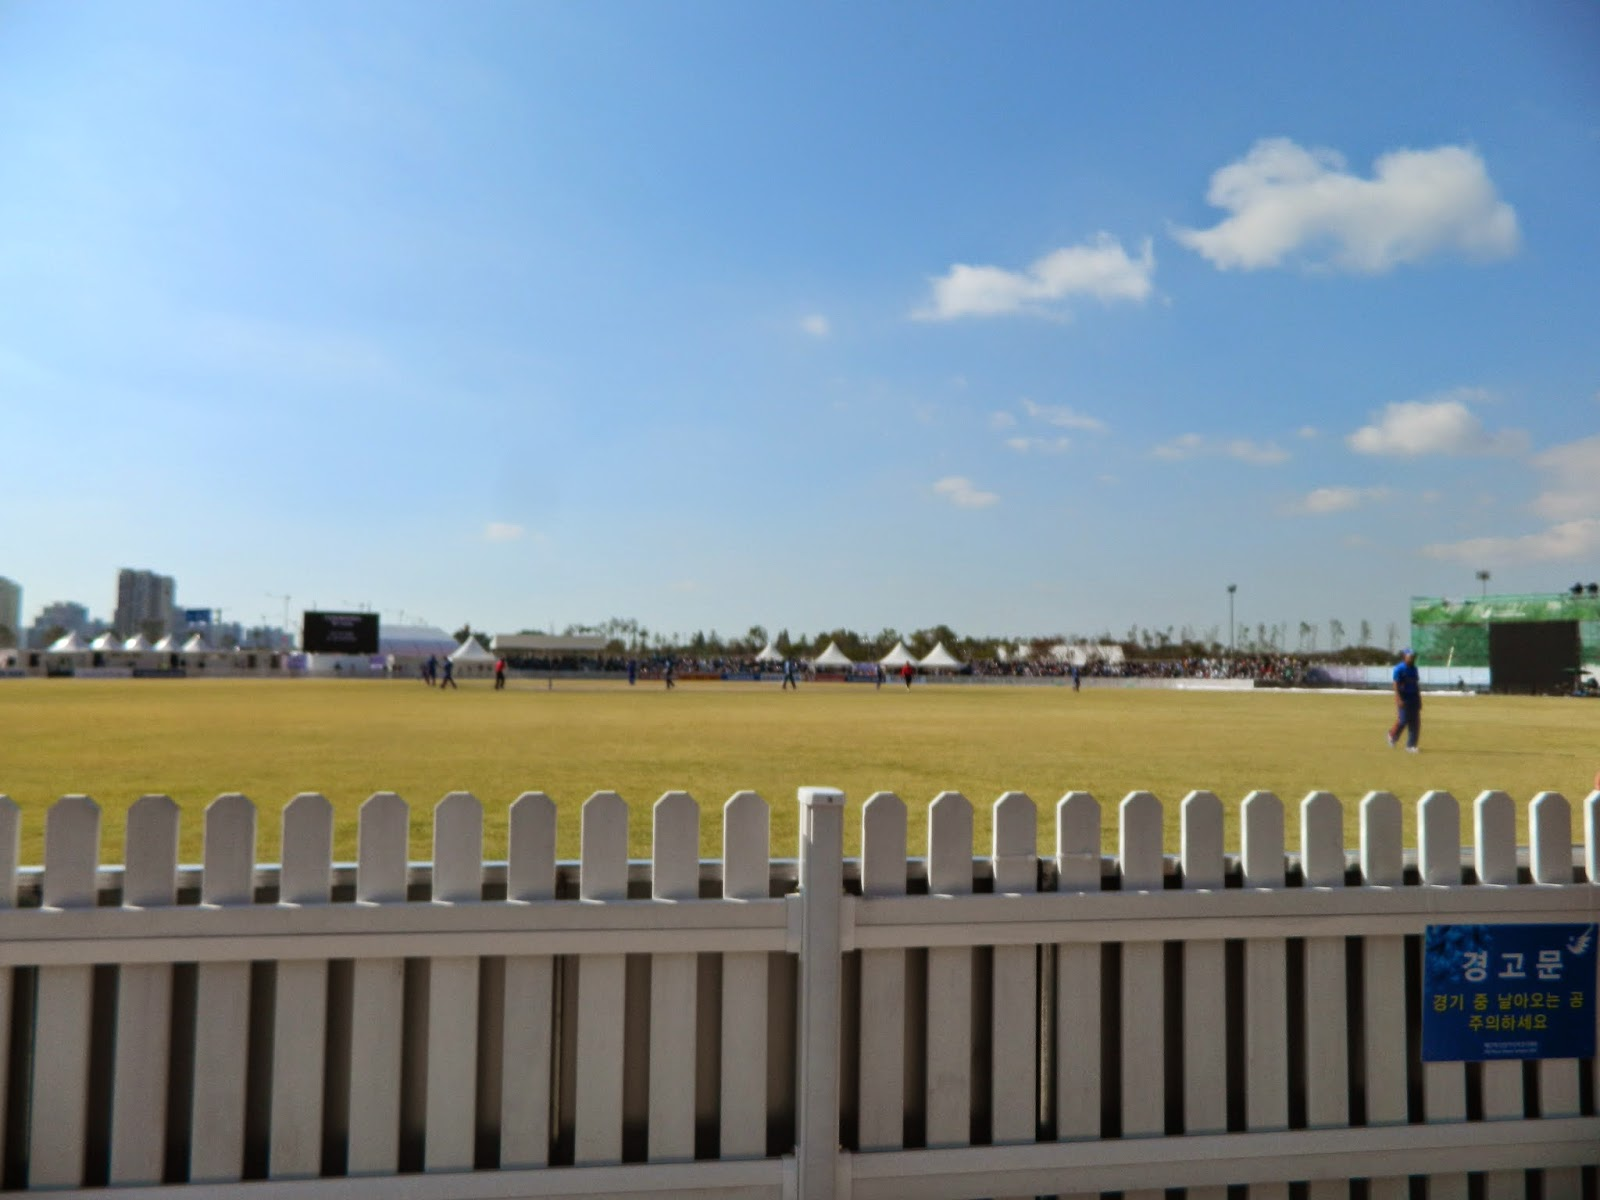 The cricket stadium